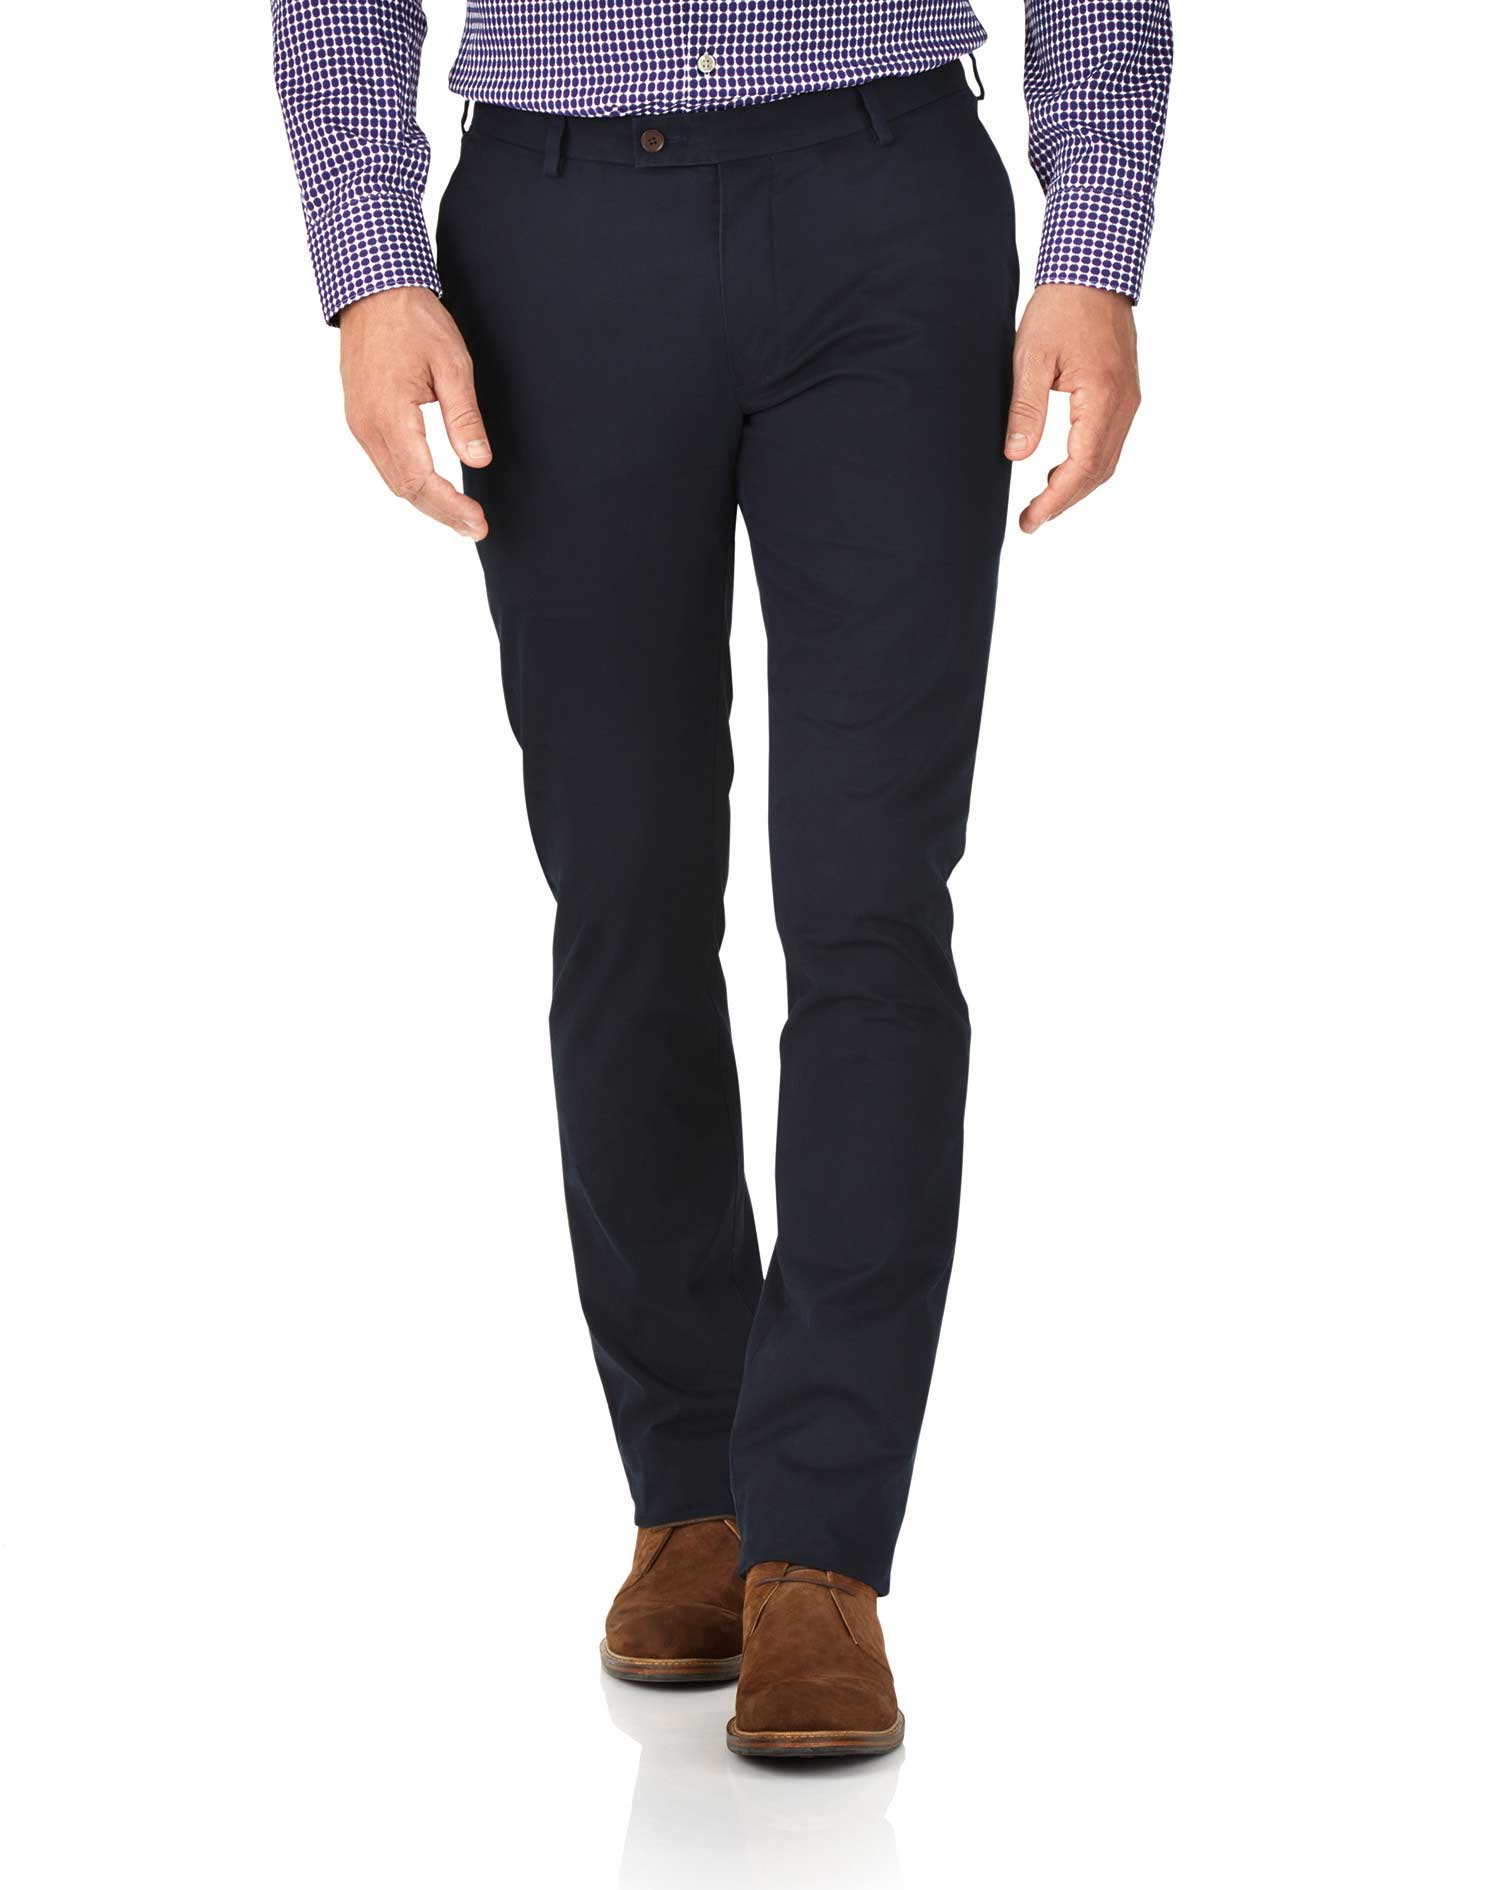 Navy Extra Slim Fit Stretch Cotton Chino Trousers Size W30 L34 by Charles Tyrwhitt